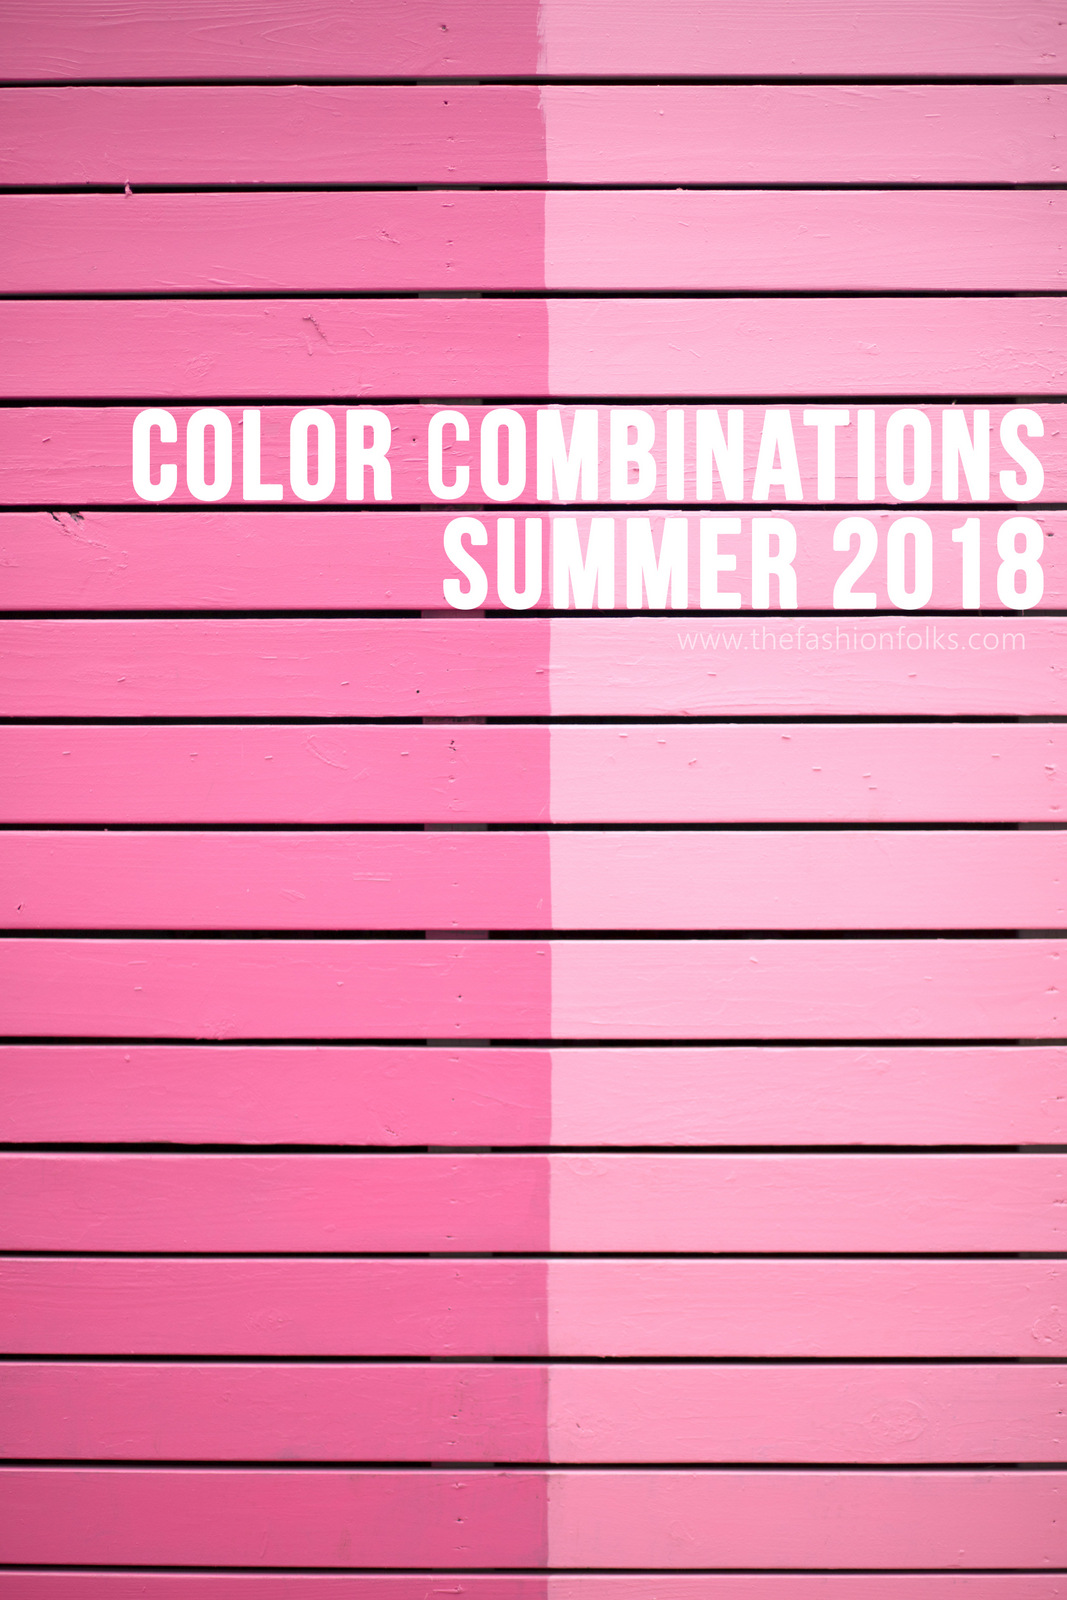 Color Combinatons Summer 2018